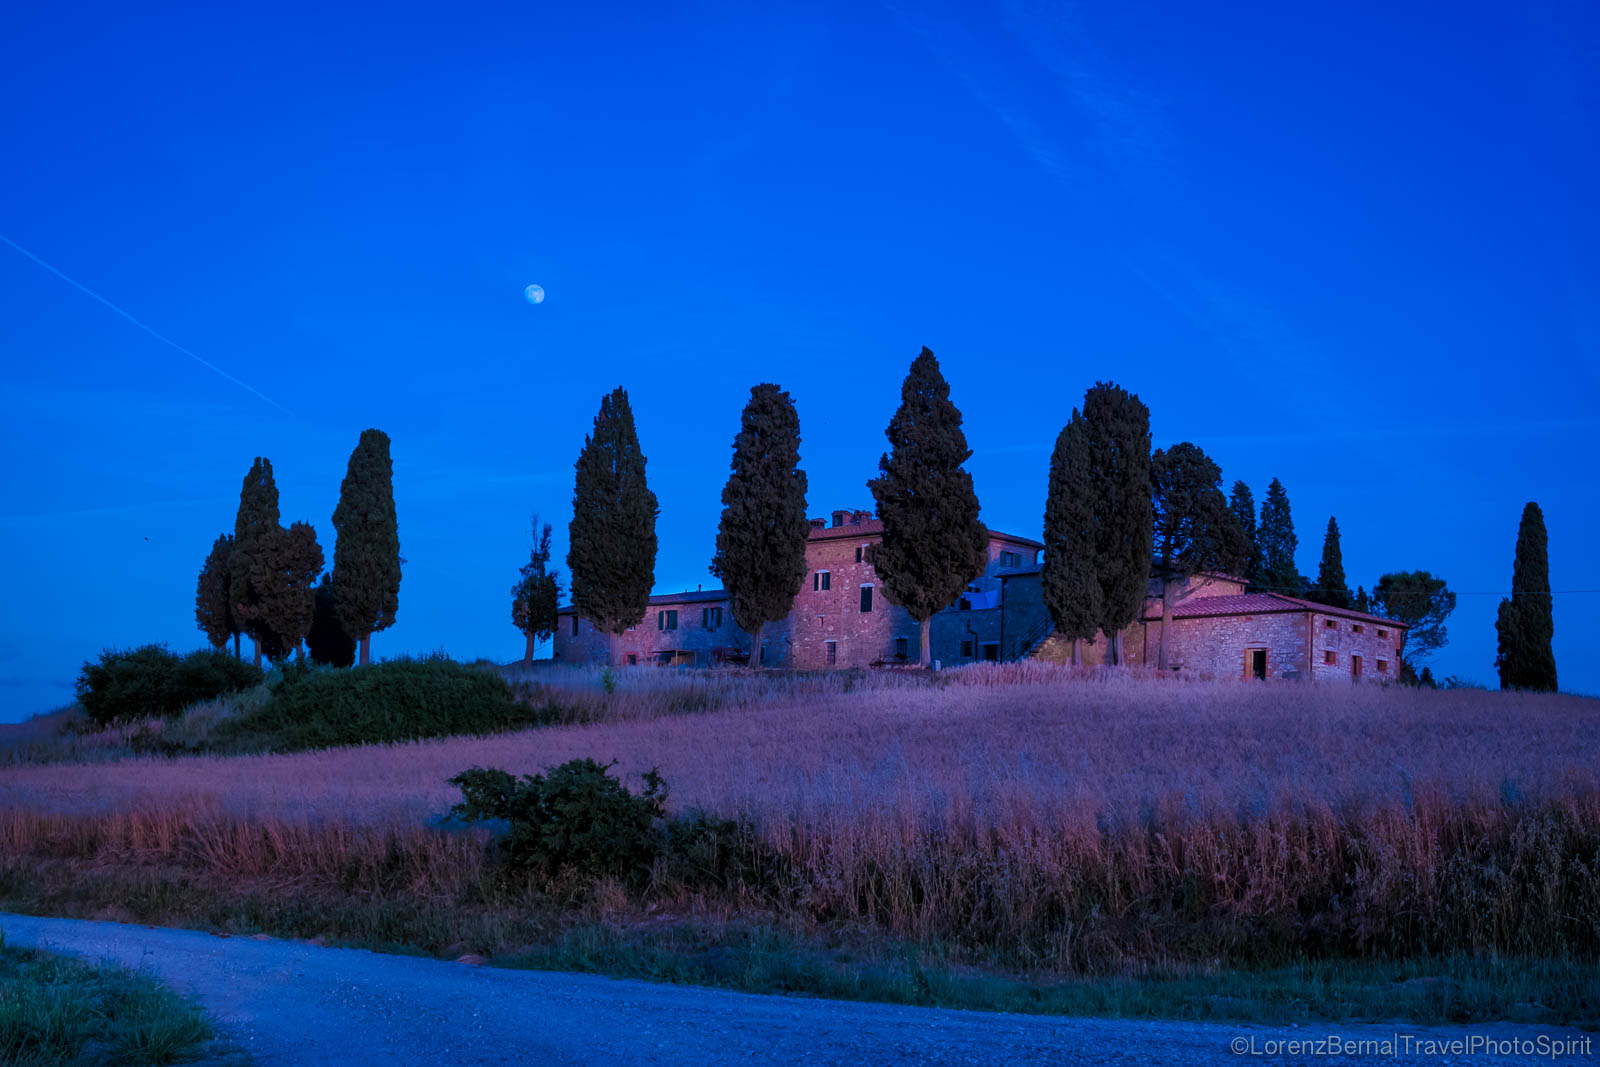 Tuscany medieval farmhouse in the night, Italy